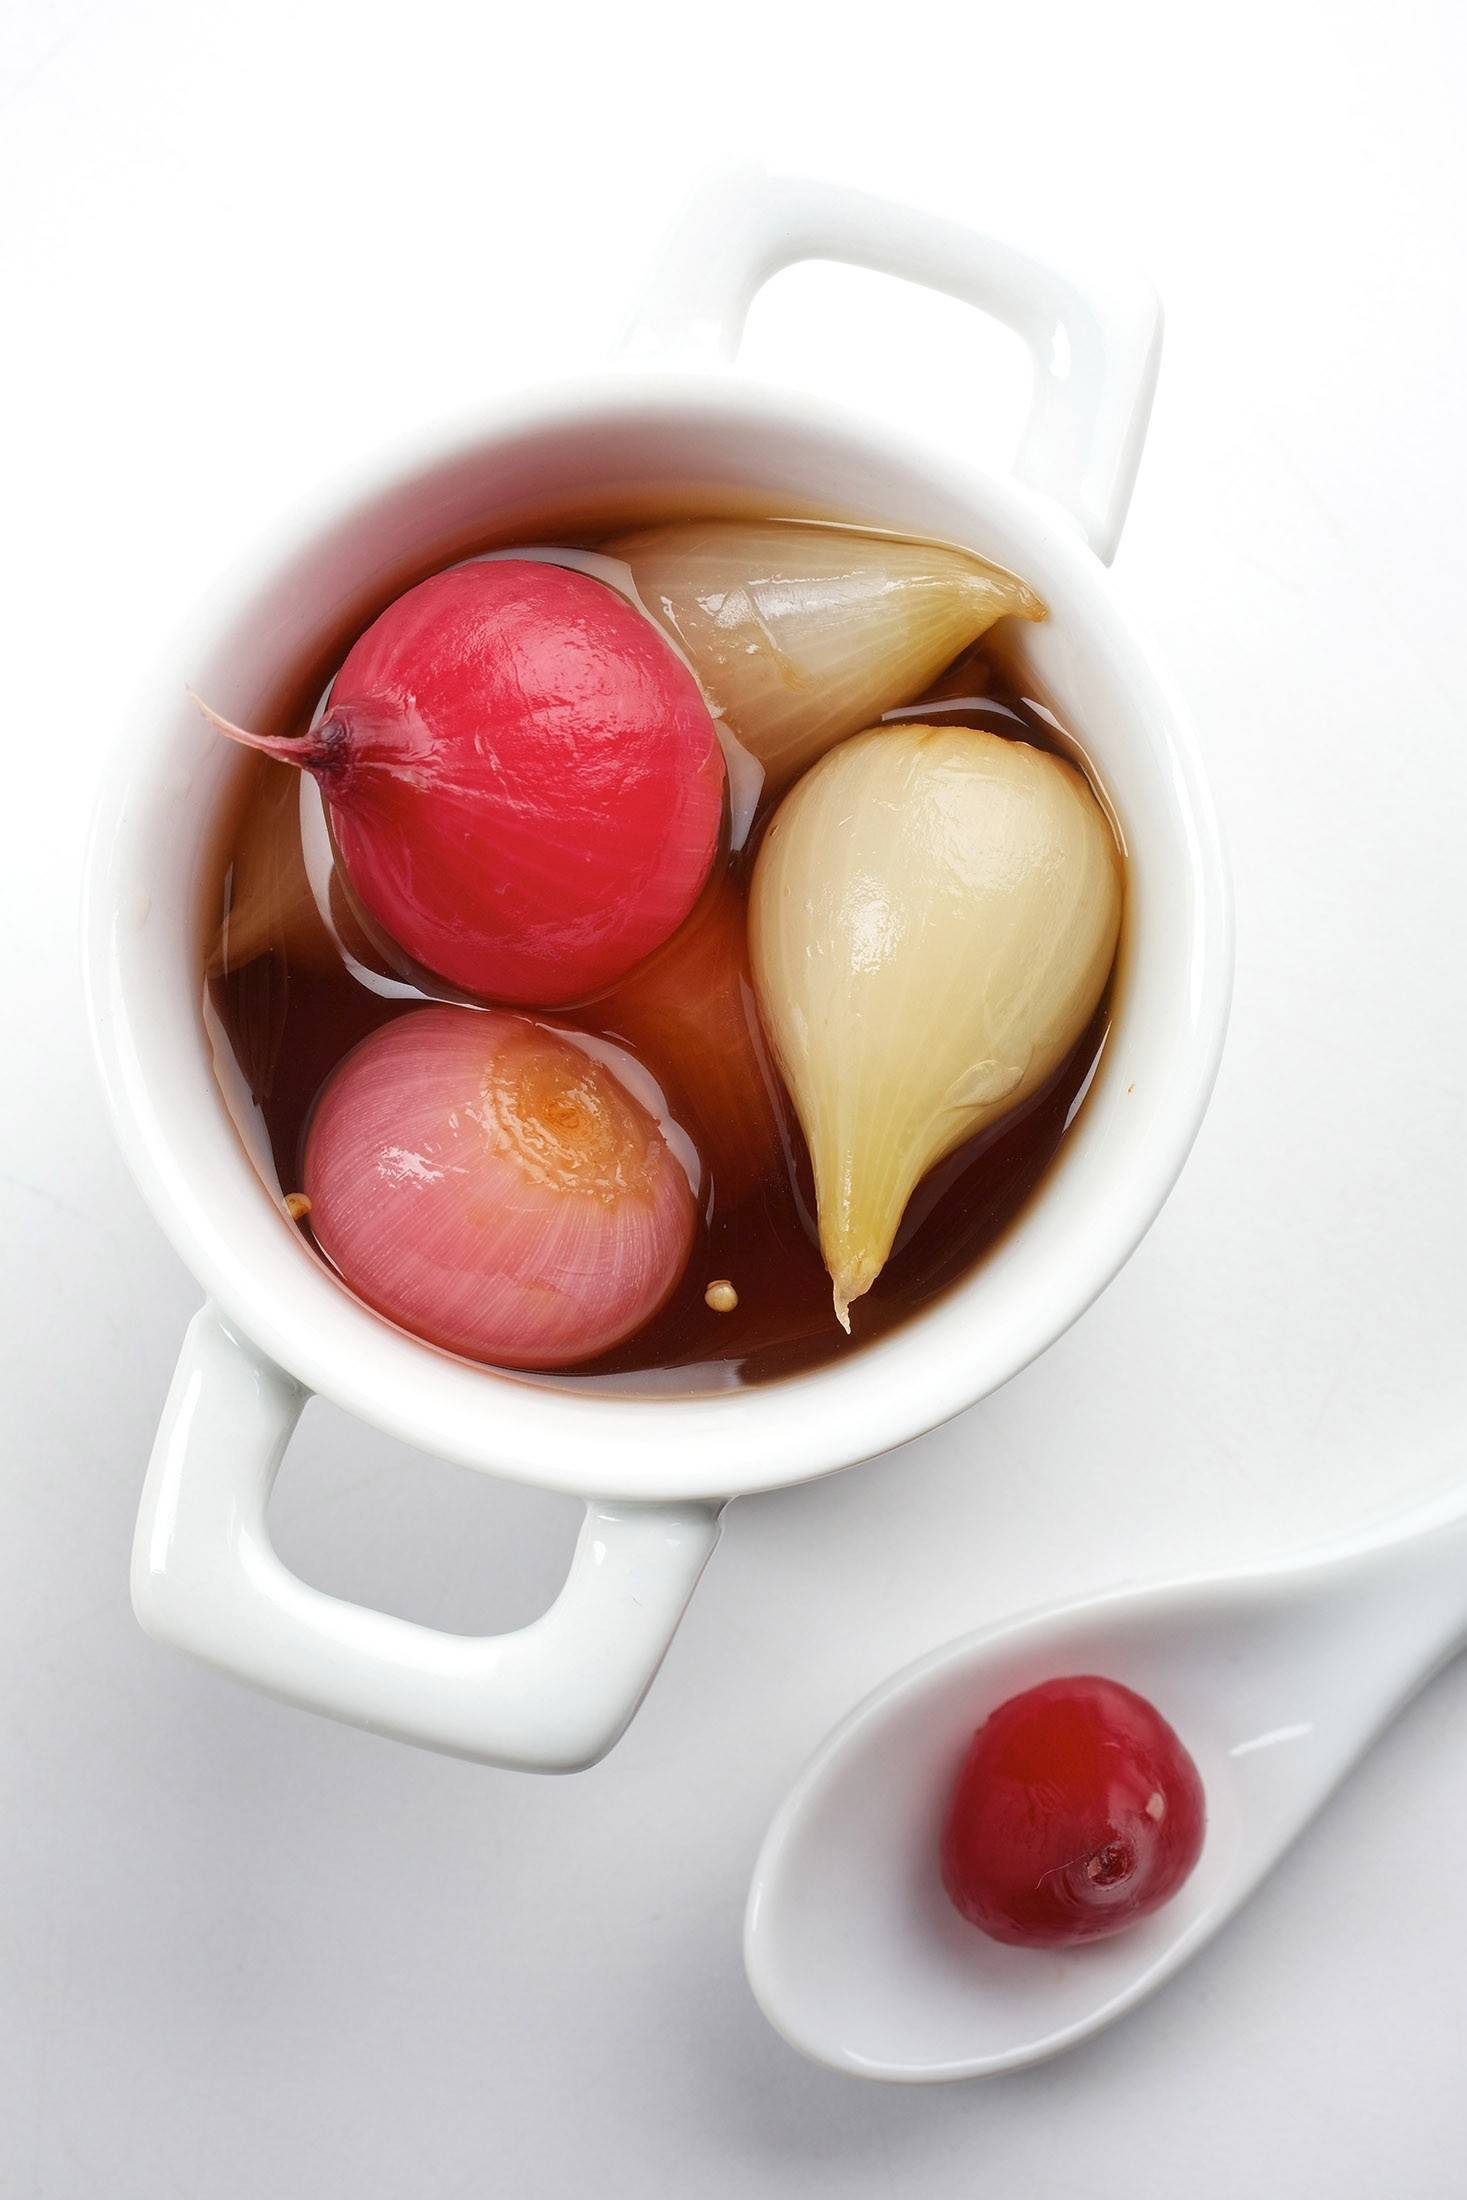 The pickled onion gives the Gibson its salty, sour bite.